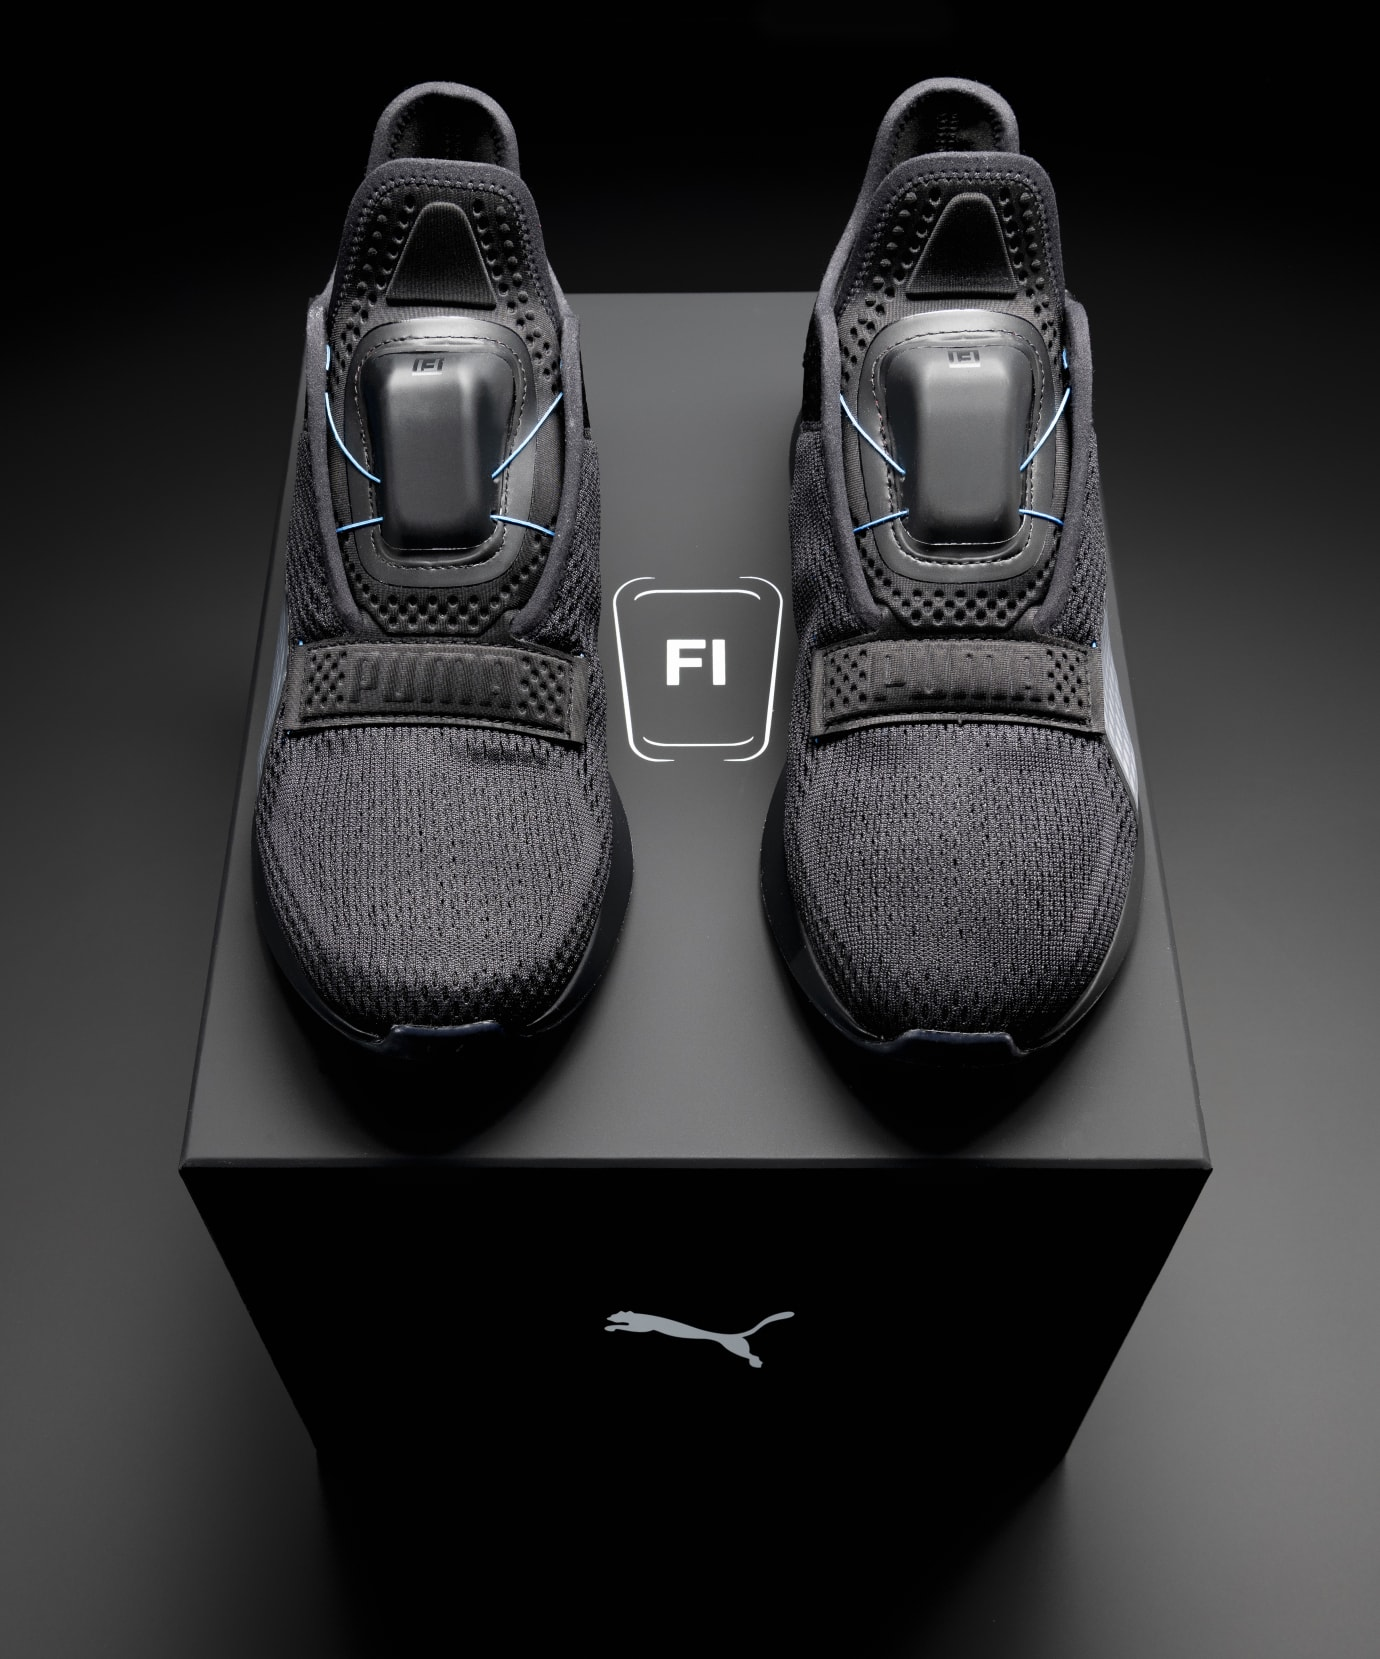 676b6bfe41df Puma s Fit Intelligence is Pushing Footwear Tech Forward — CNK ...